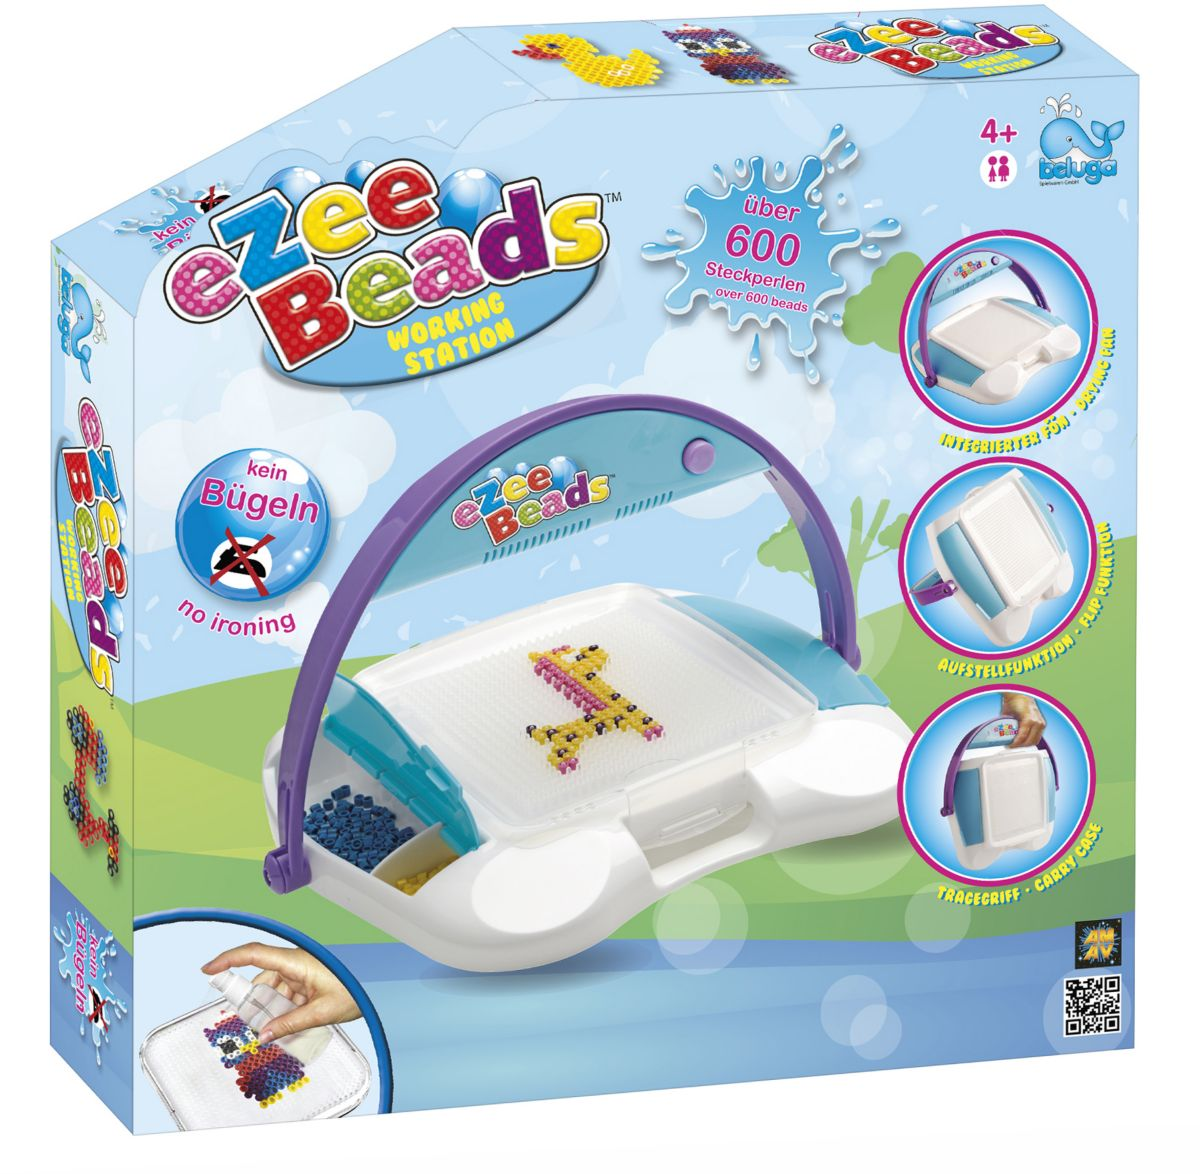 Beluga Kreativ Set, »eZee Beads Working Station«